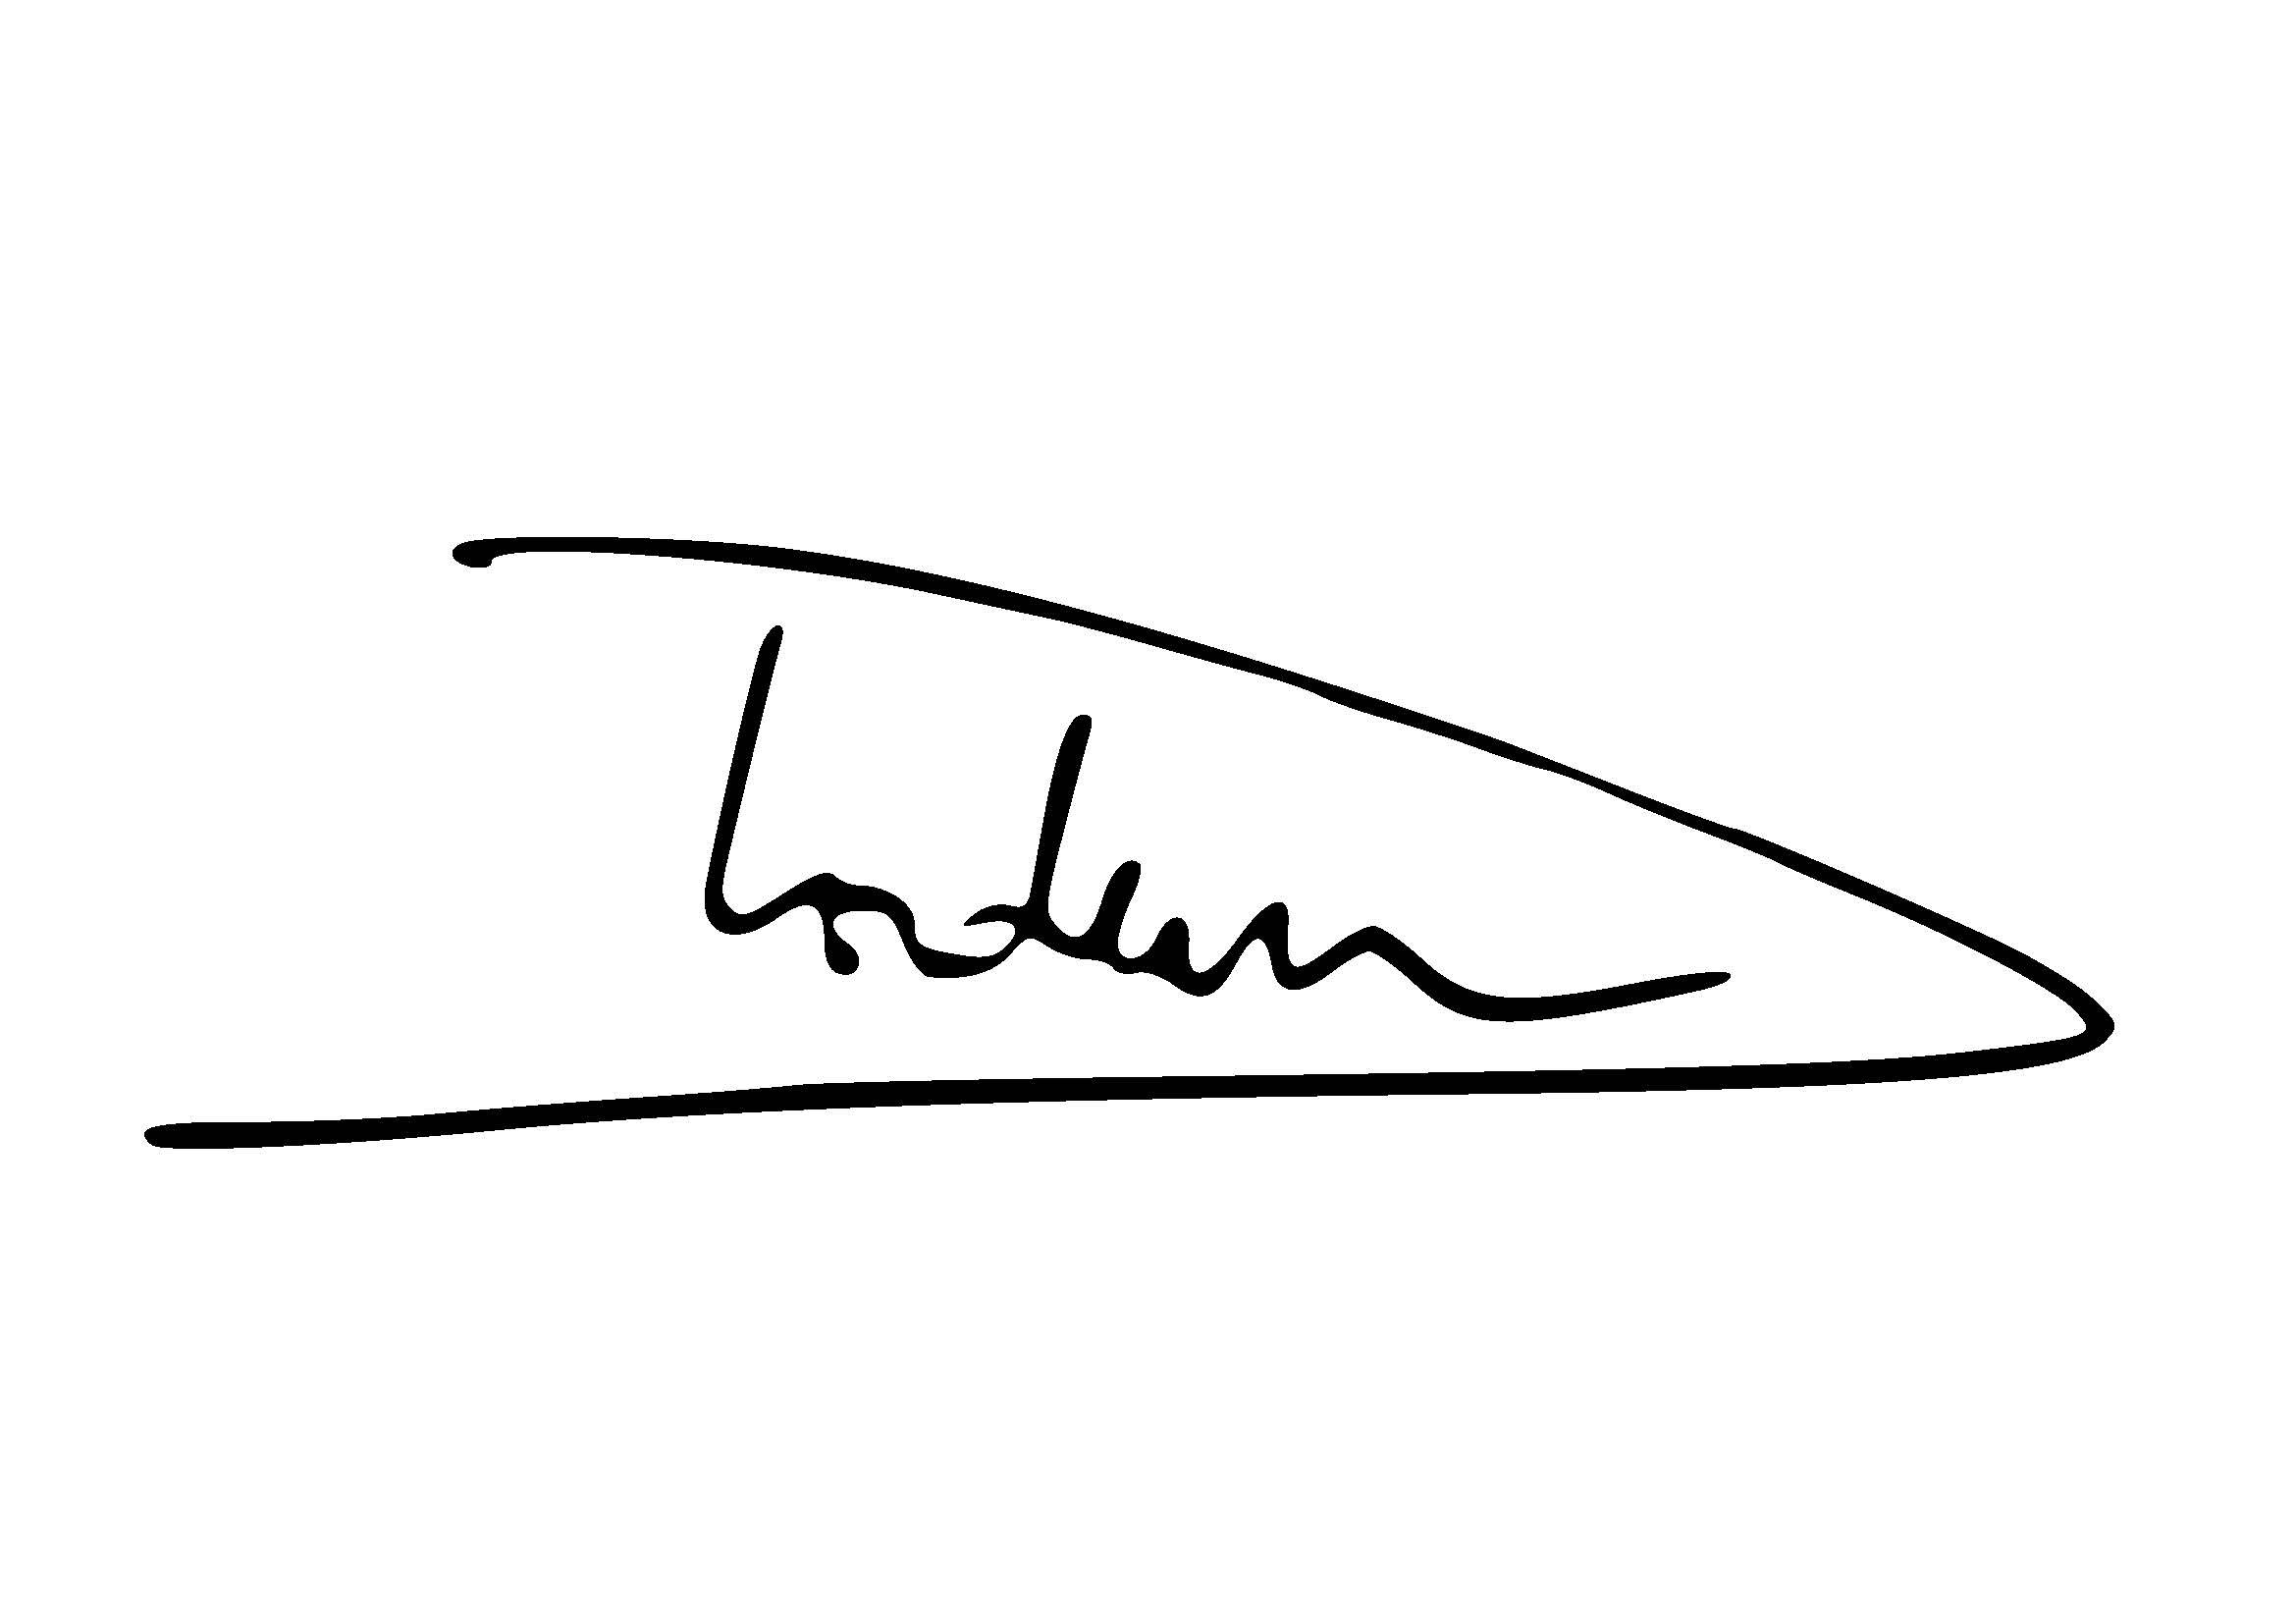 Matthieu Signature-MT_Handwriting.jpg